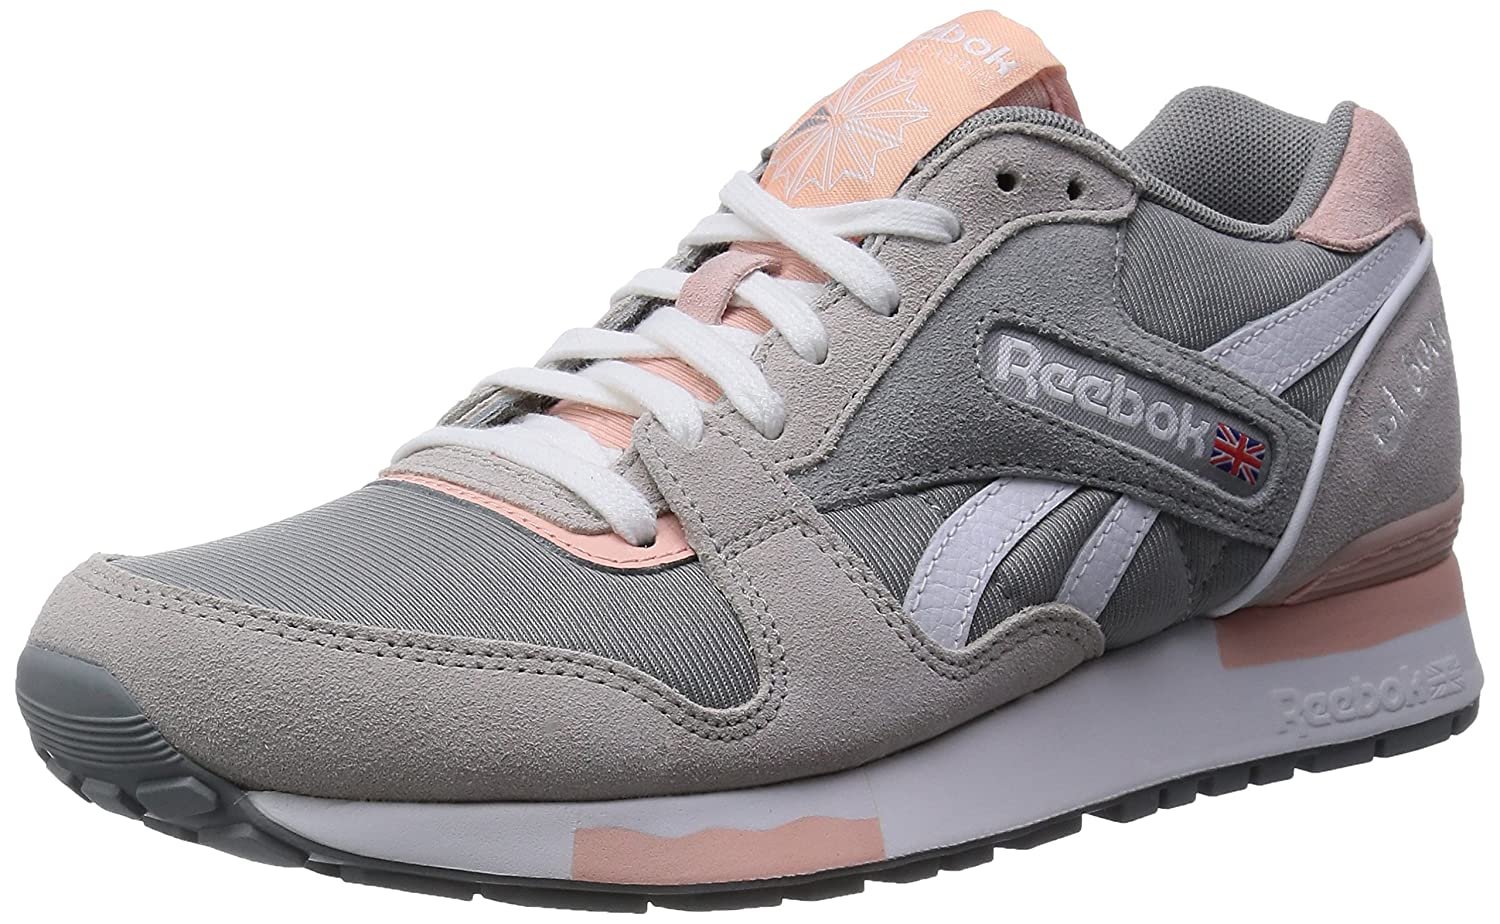 3dd1b2a81b4 ... coupon code for reebok gl 6000 athletic chaussures 35 grey steel coral  amazon.fr chaussures